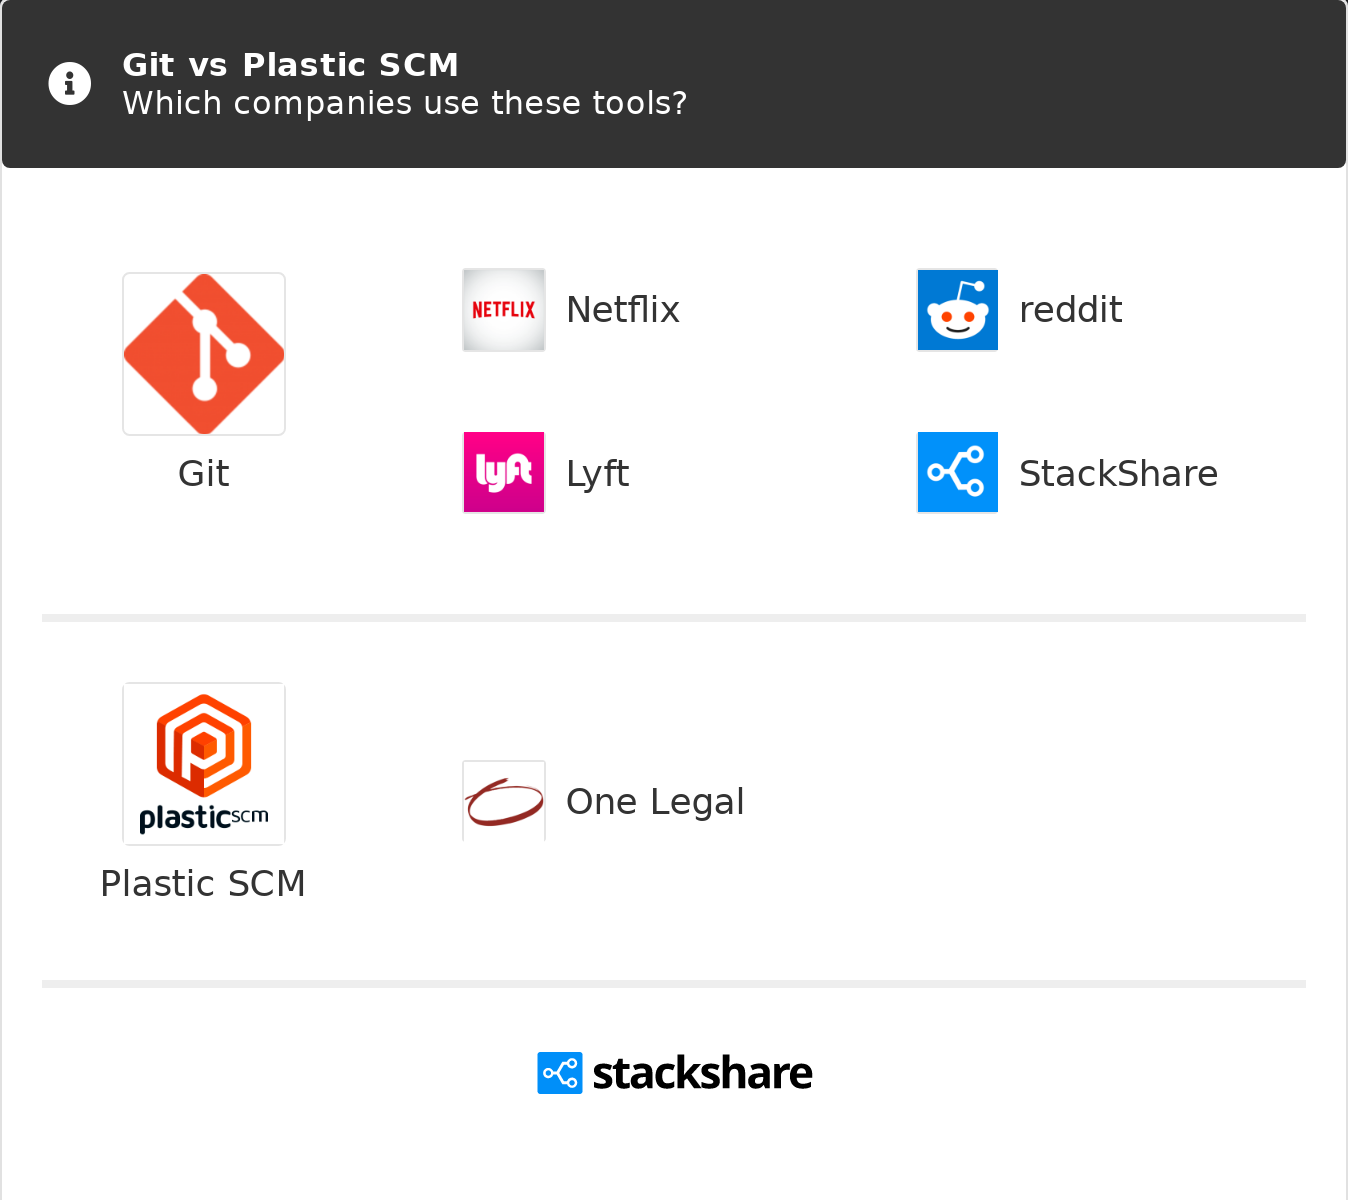 Git vs Plastic SCM | What are the differences?